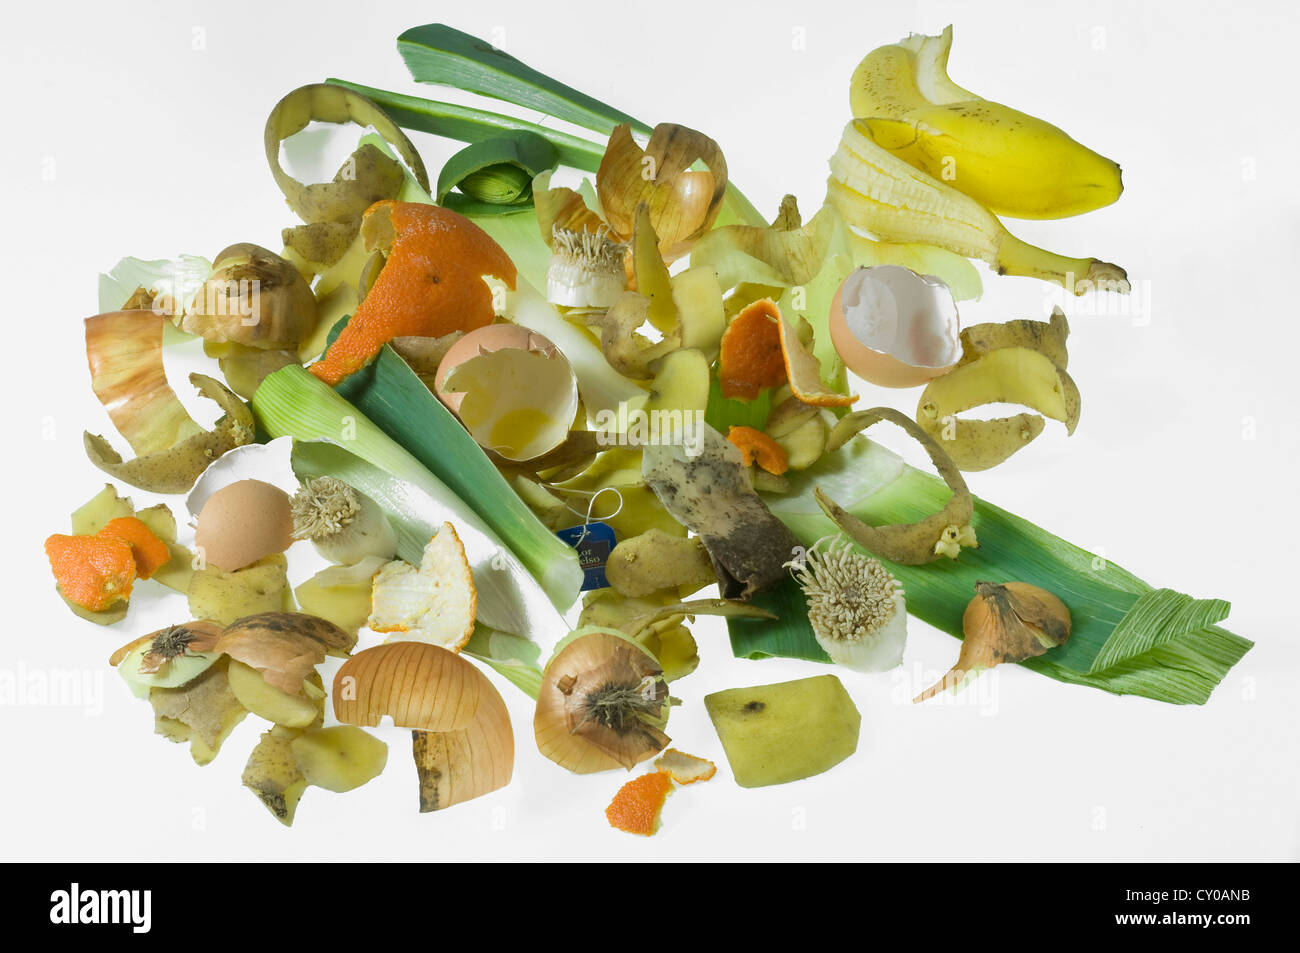 Organic waste - Stock Image